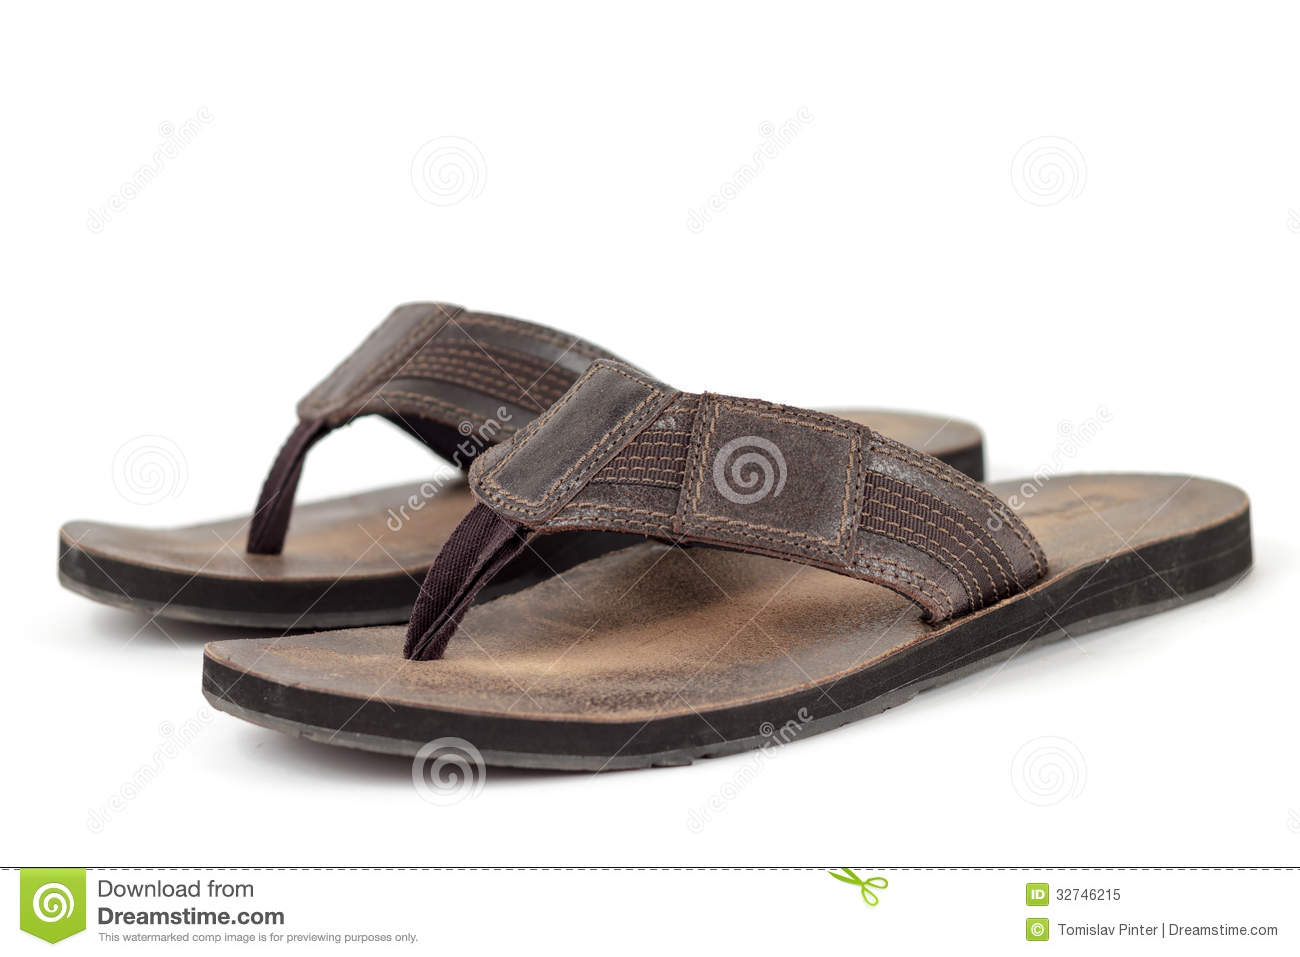 32334de772230 Thong Sandals Stock Images - Download 582 Royalty Free Photos